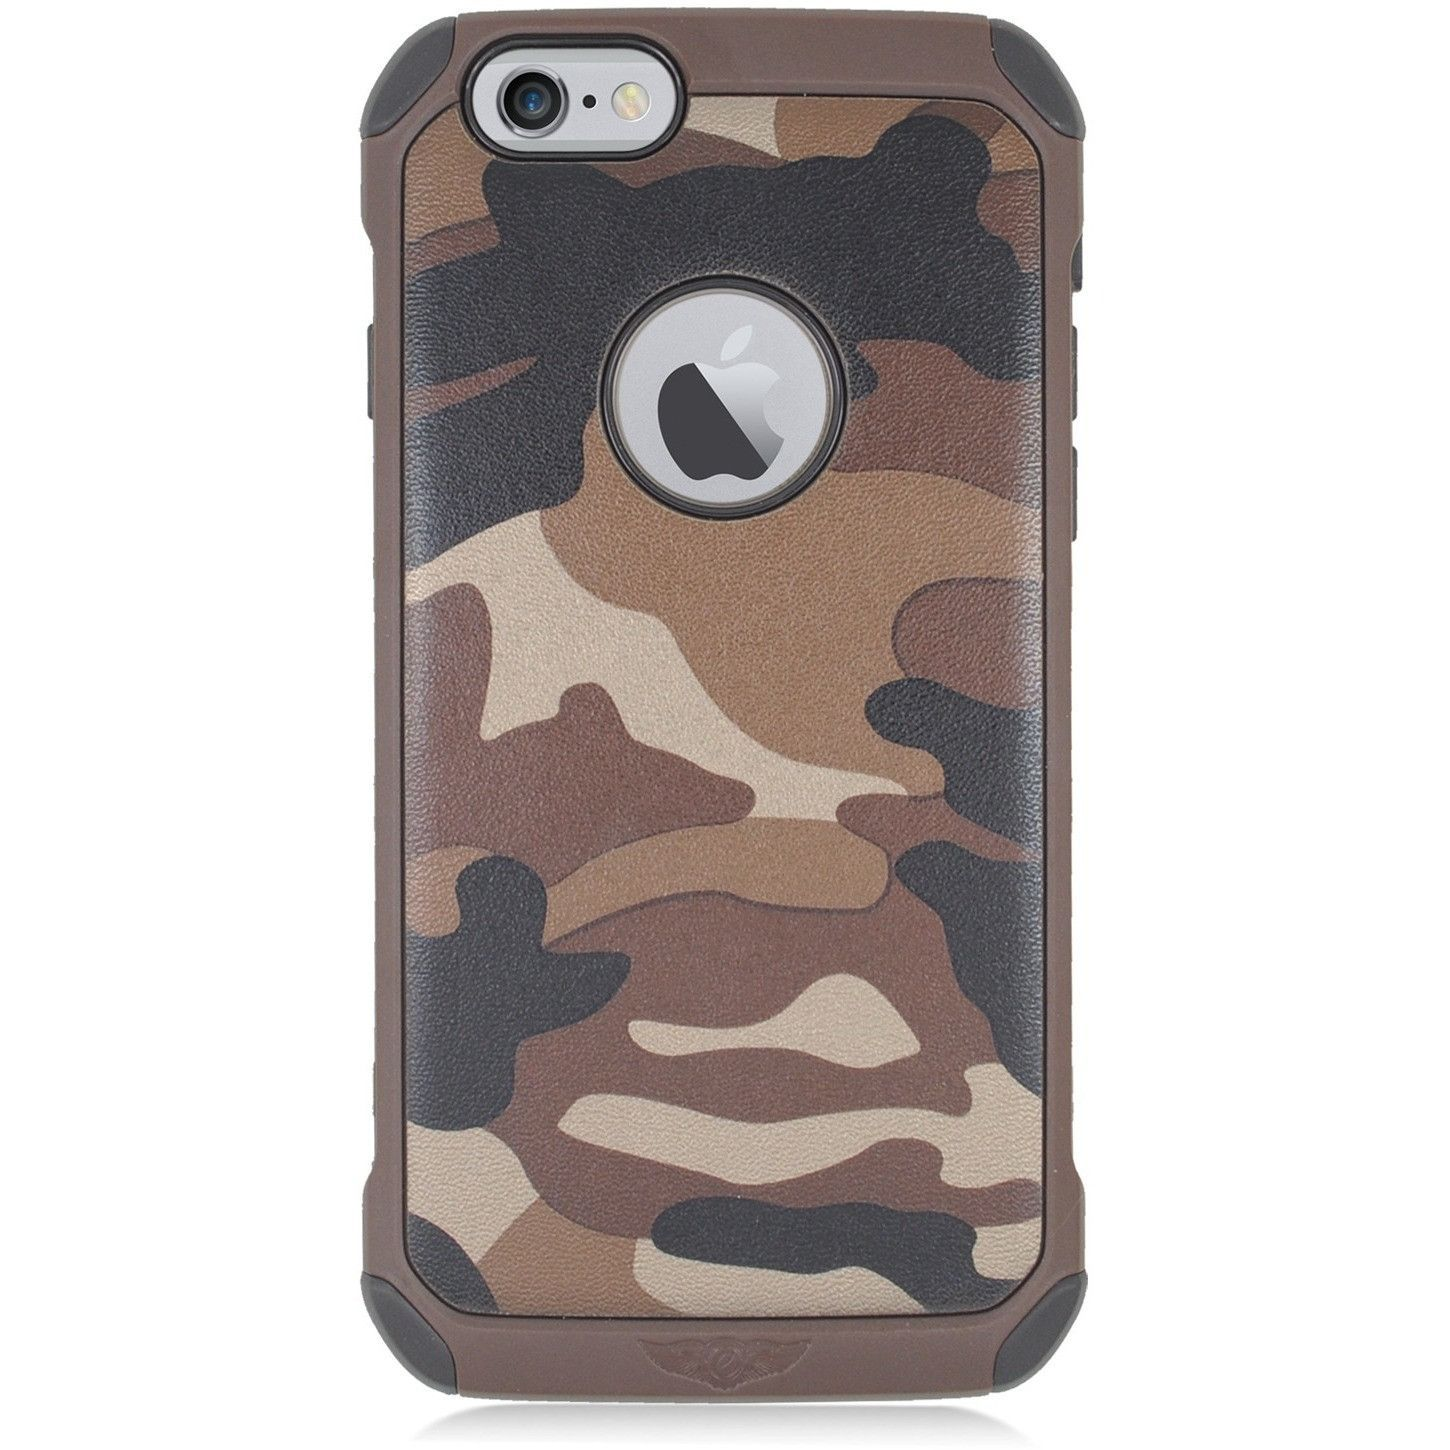 "EGC Apple iPhone 6 (4.7"") Hybrid TPU Armor Case - Brown Camouflage"